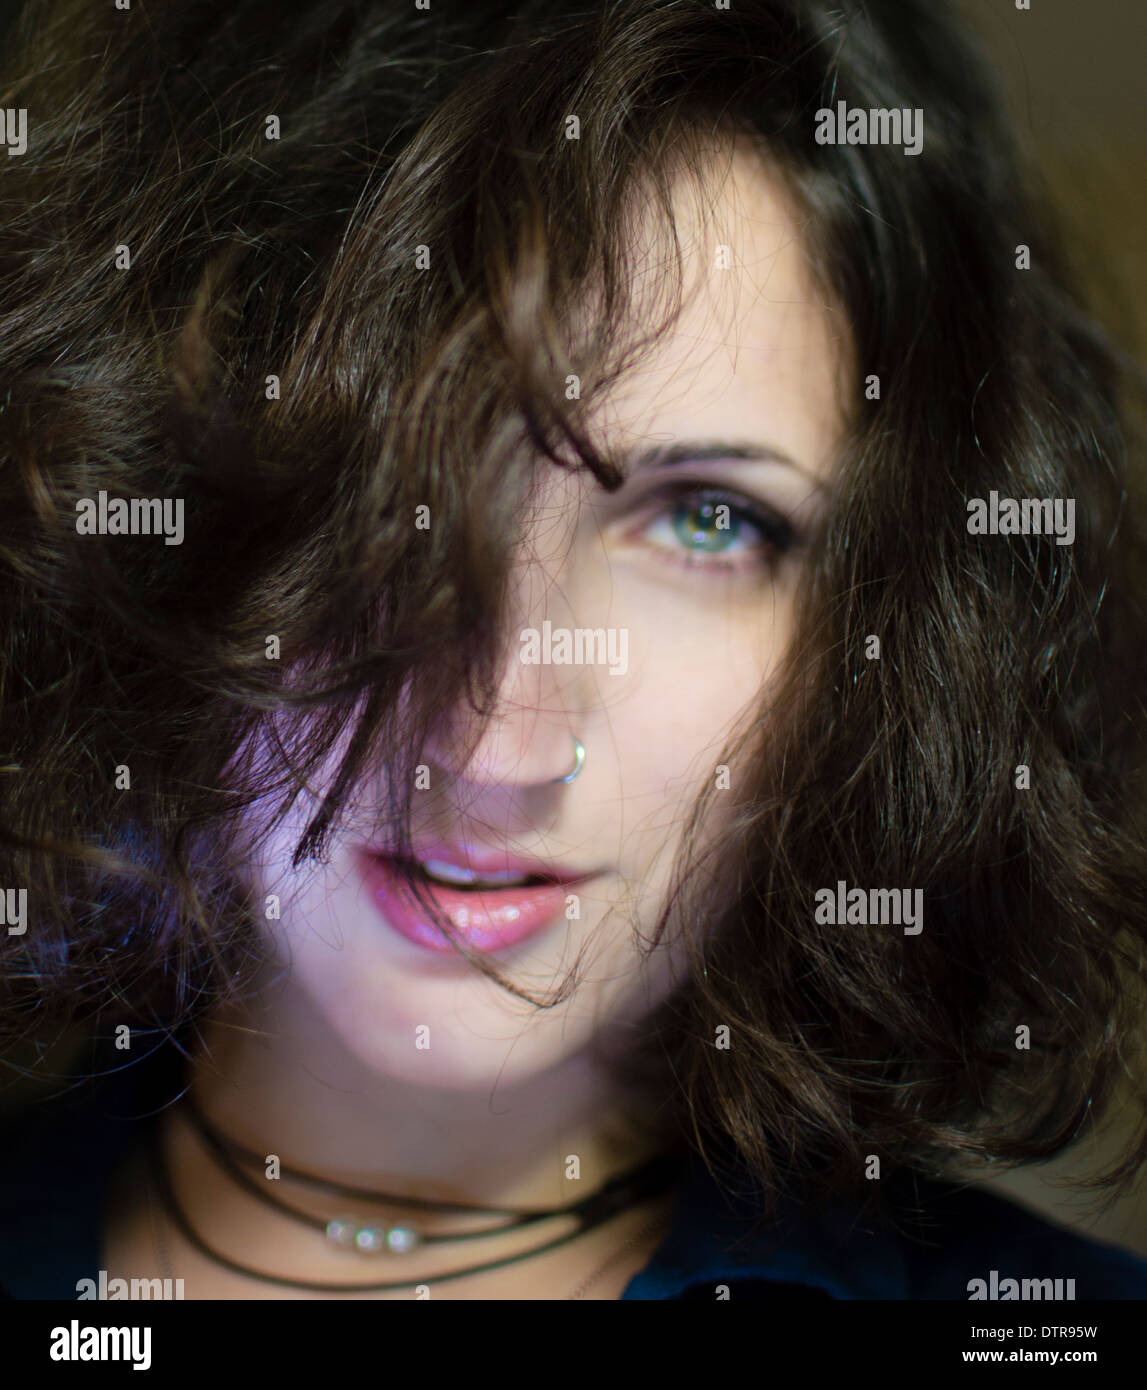 Portrait of a young woman in her early 20s Model release available - Stock Image